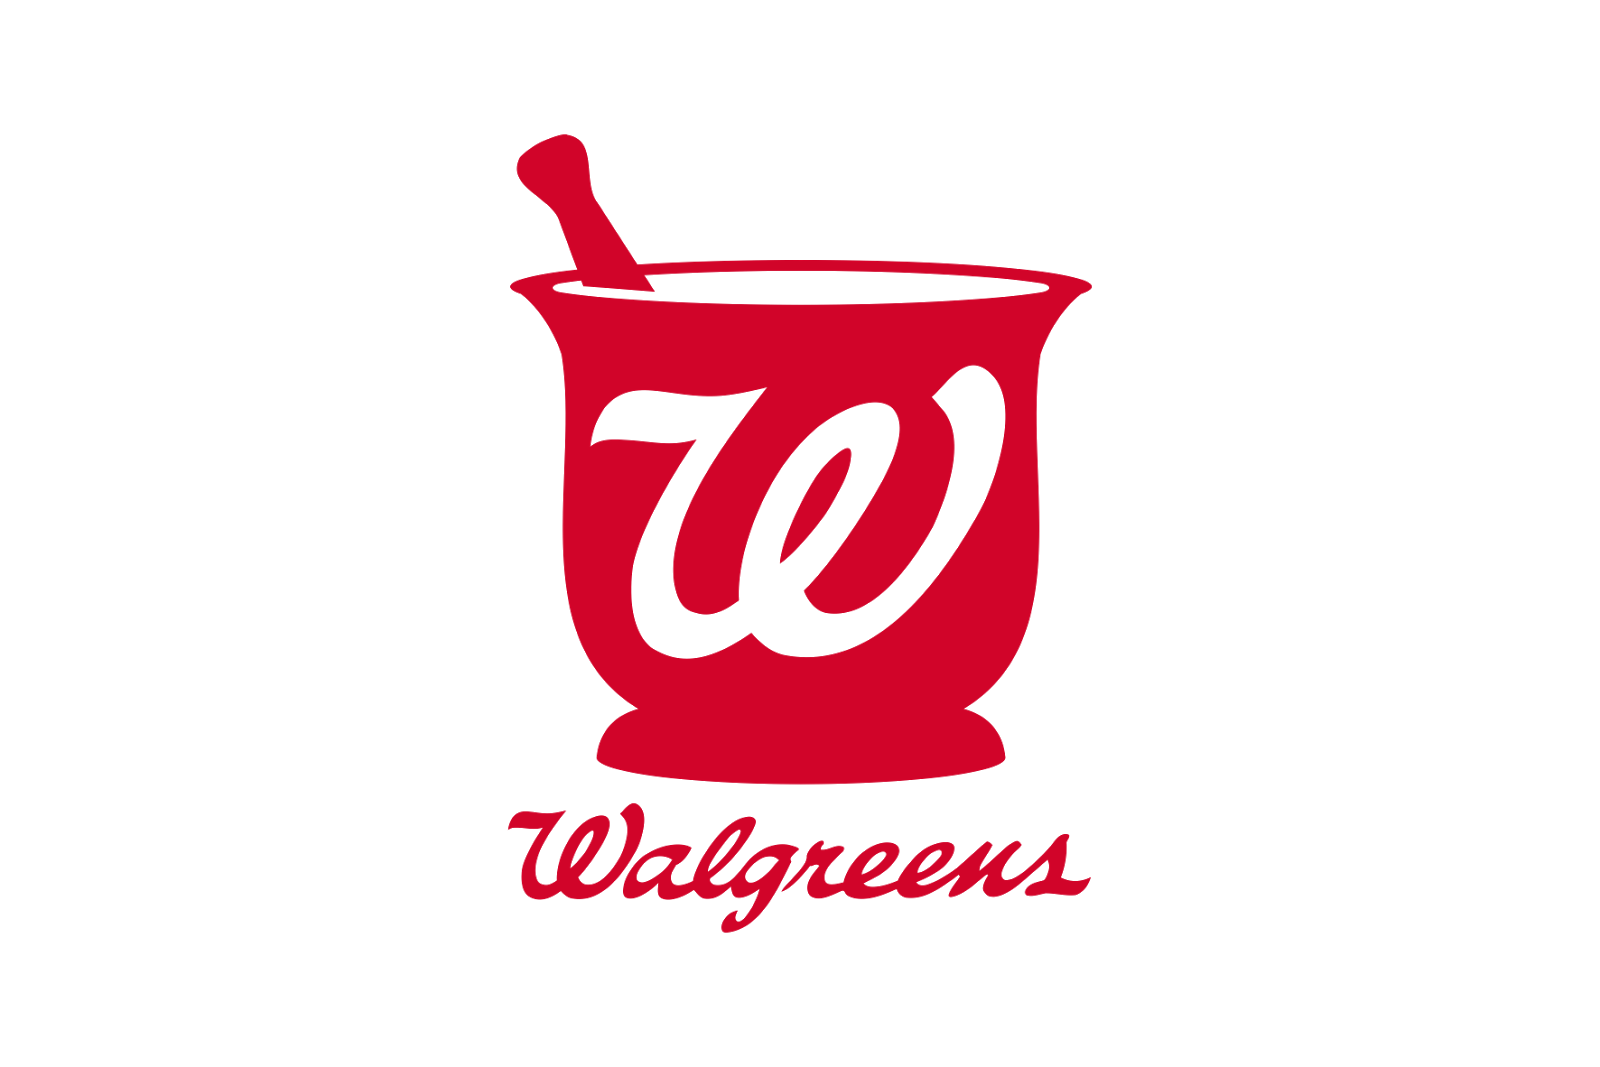 Walgreens began in , with a drug store on the corner of Bowen and Cottage Grove Avenues in Chicago, owned by Galesburg native Charles R. Walgreen, Sr. By , Walgreens had grown to four stores on Chicago's South techhelpdesk.tk opened its fifth in , and four more in